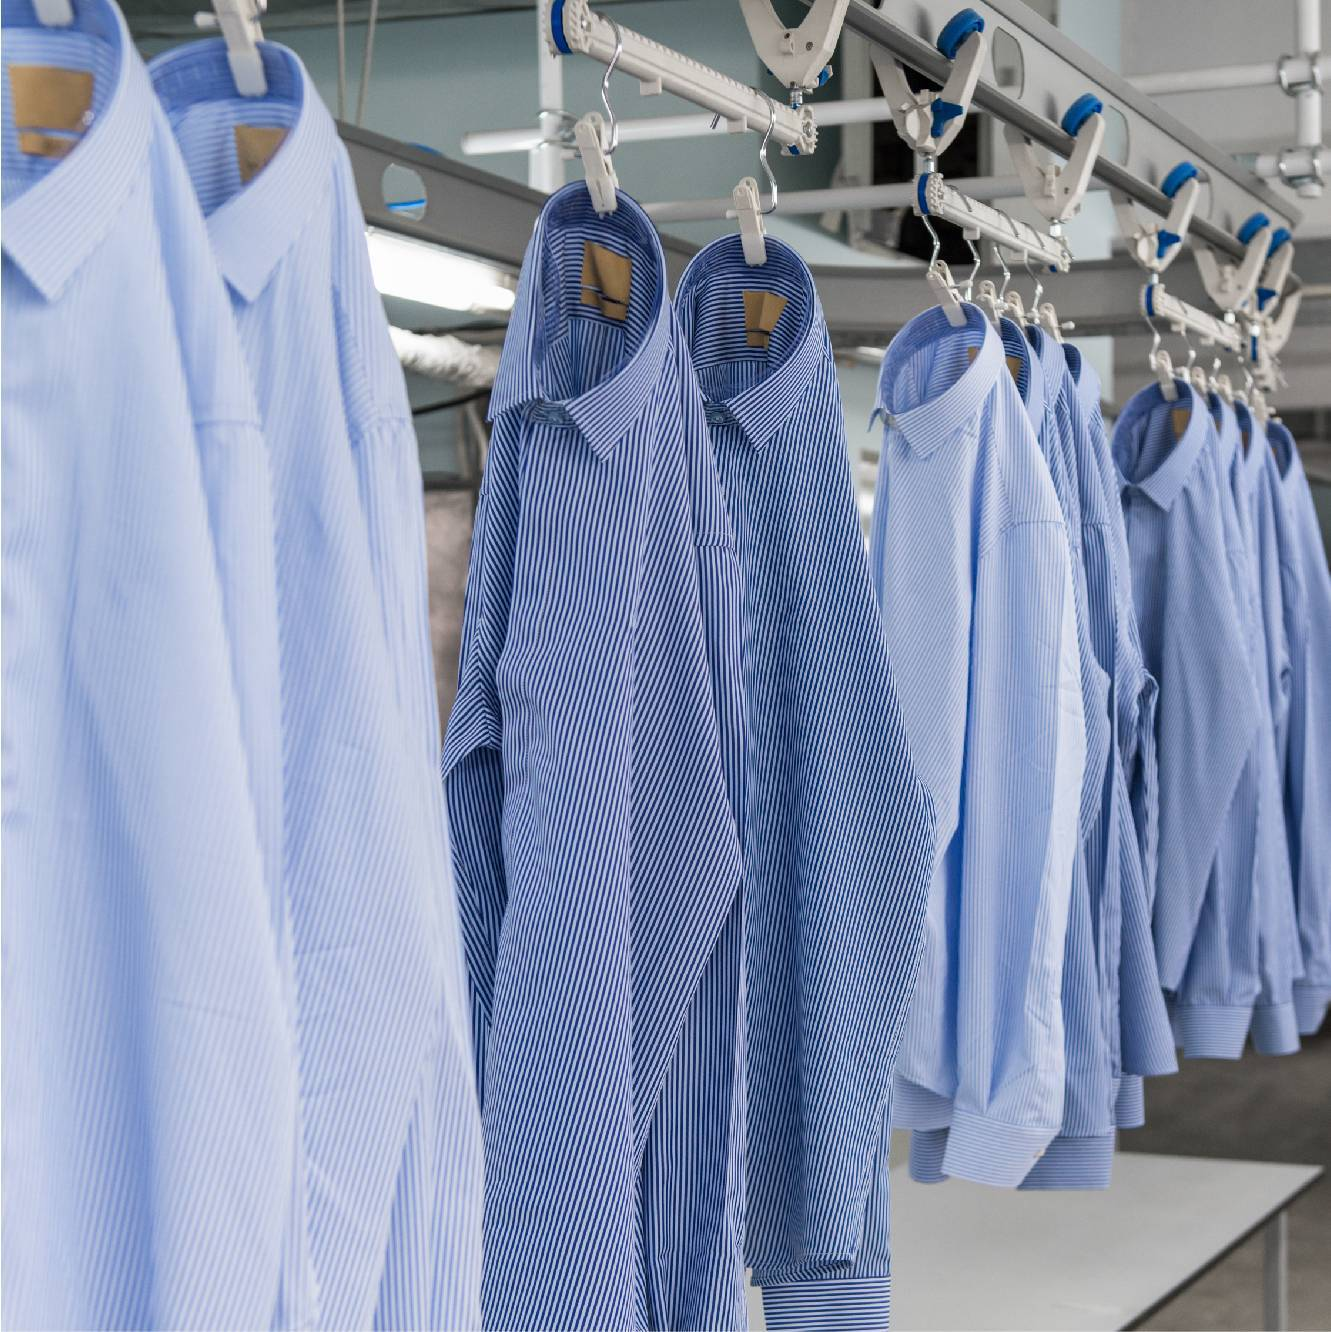 Blue striped shirts hanging in factory